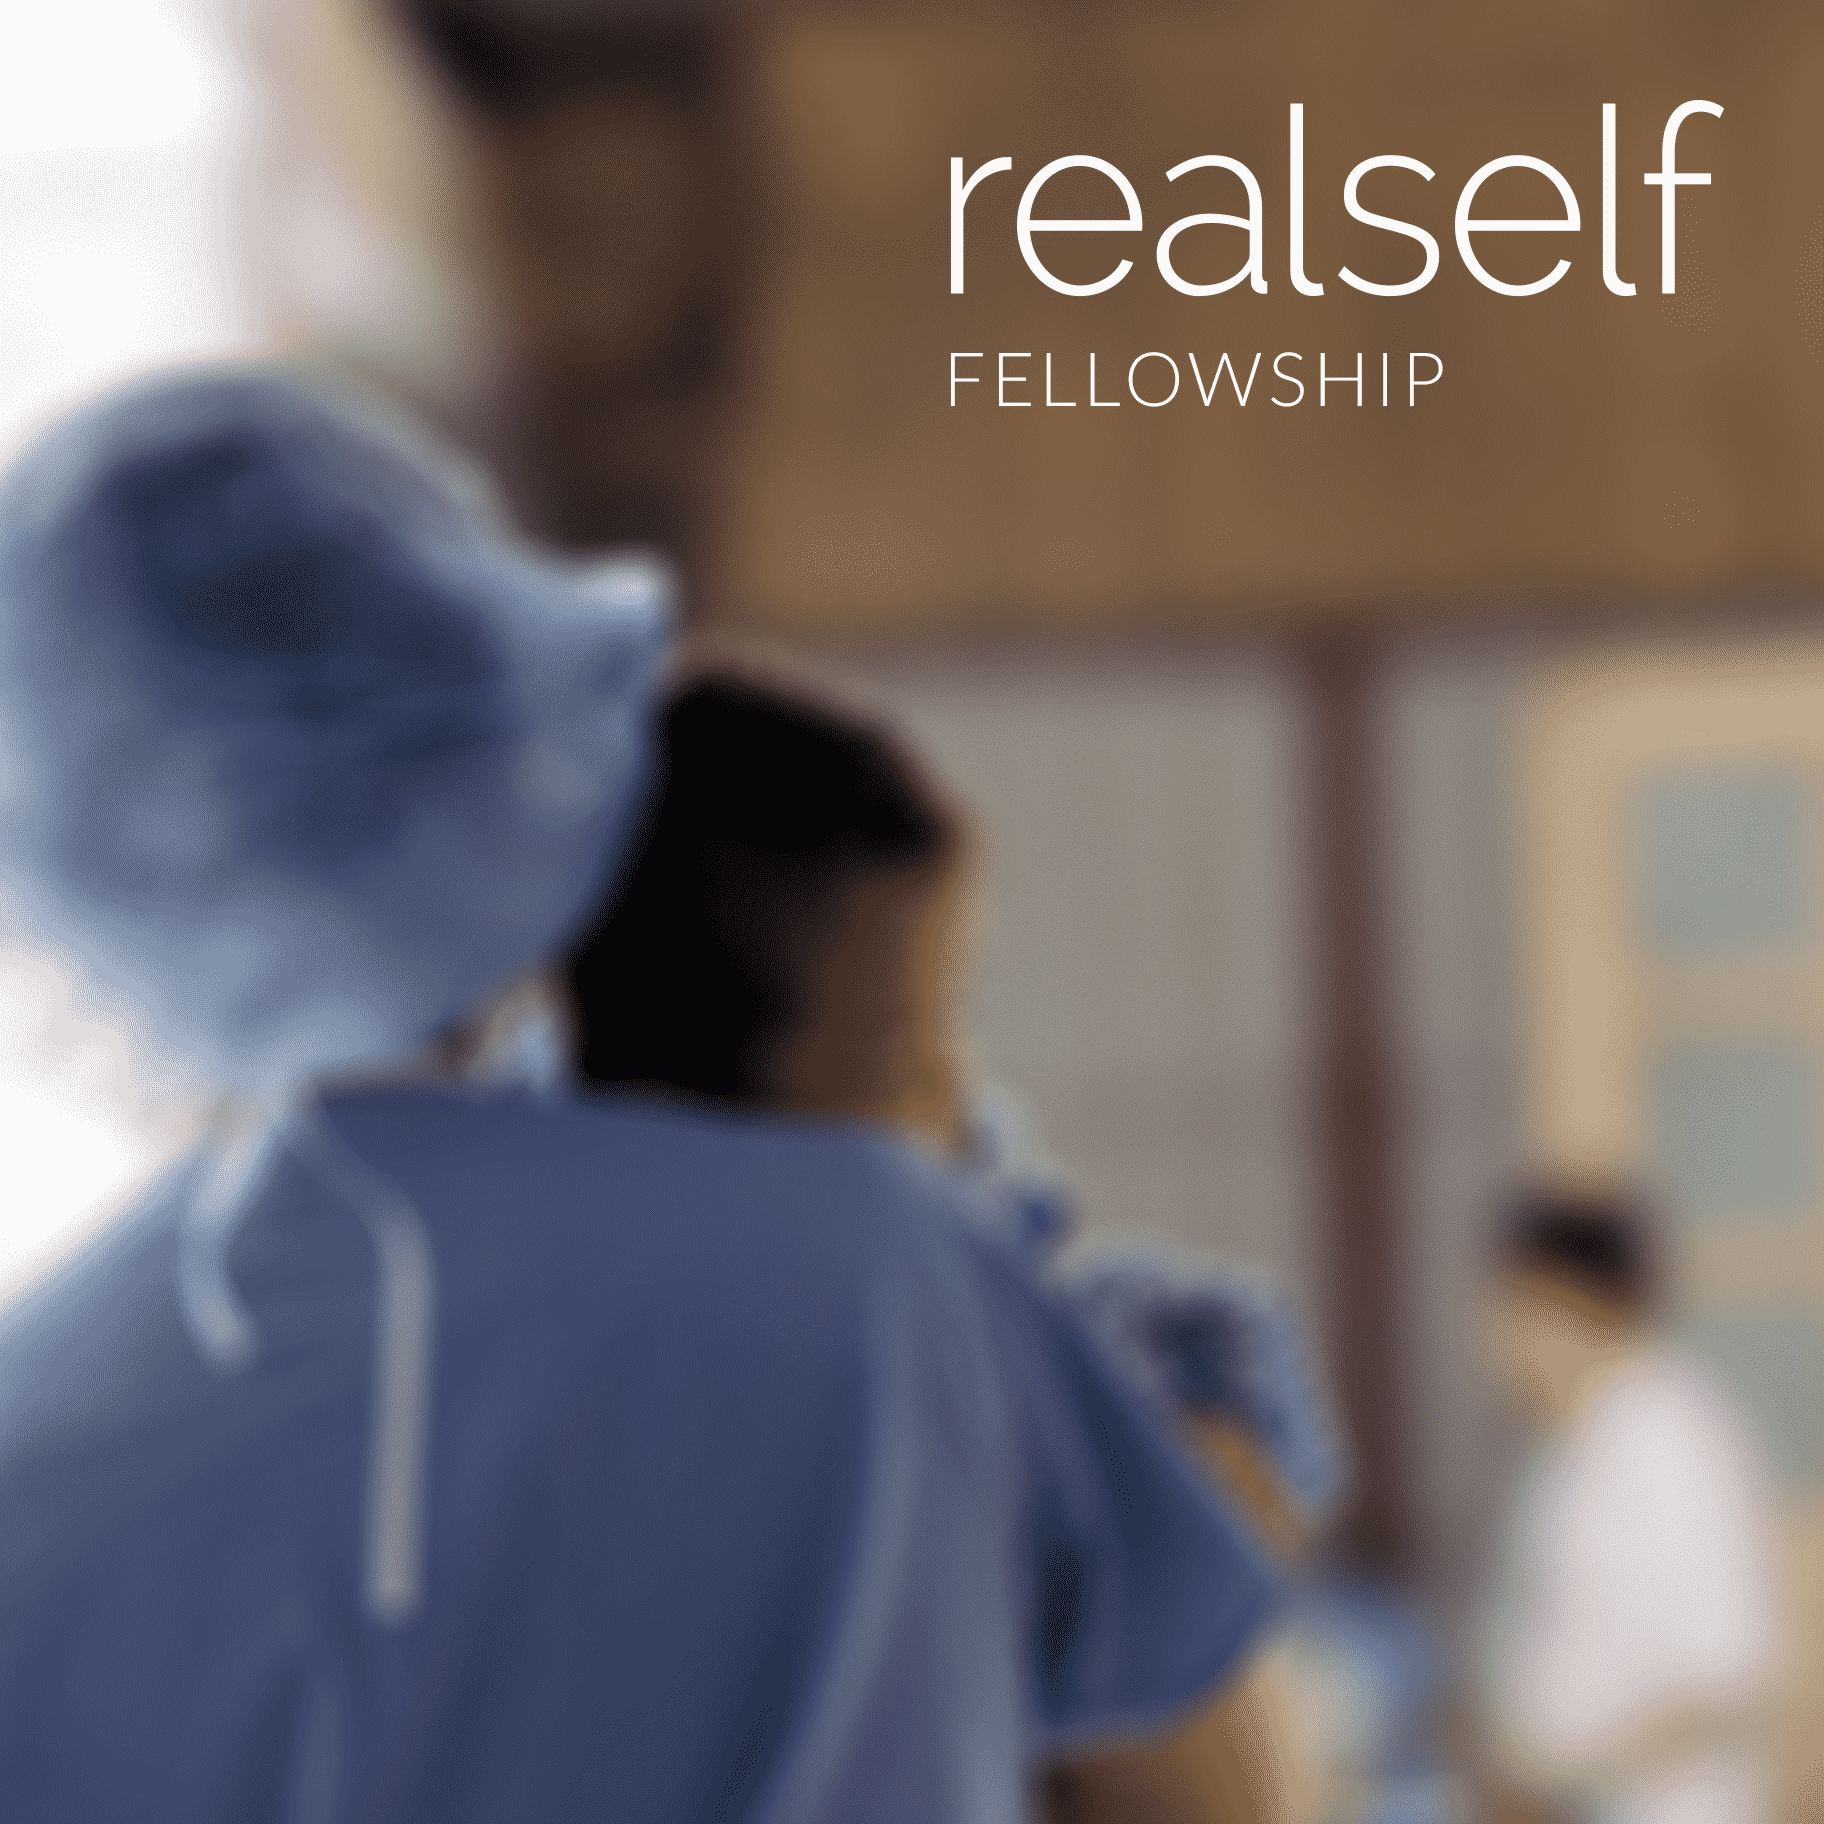 RealSelf Fellowship reconstructive surgery in developing countries